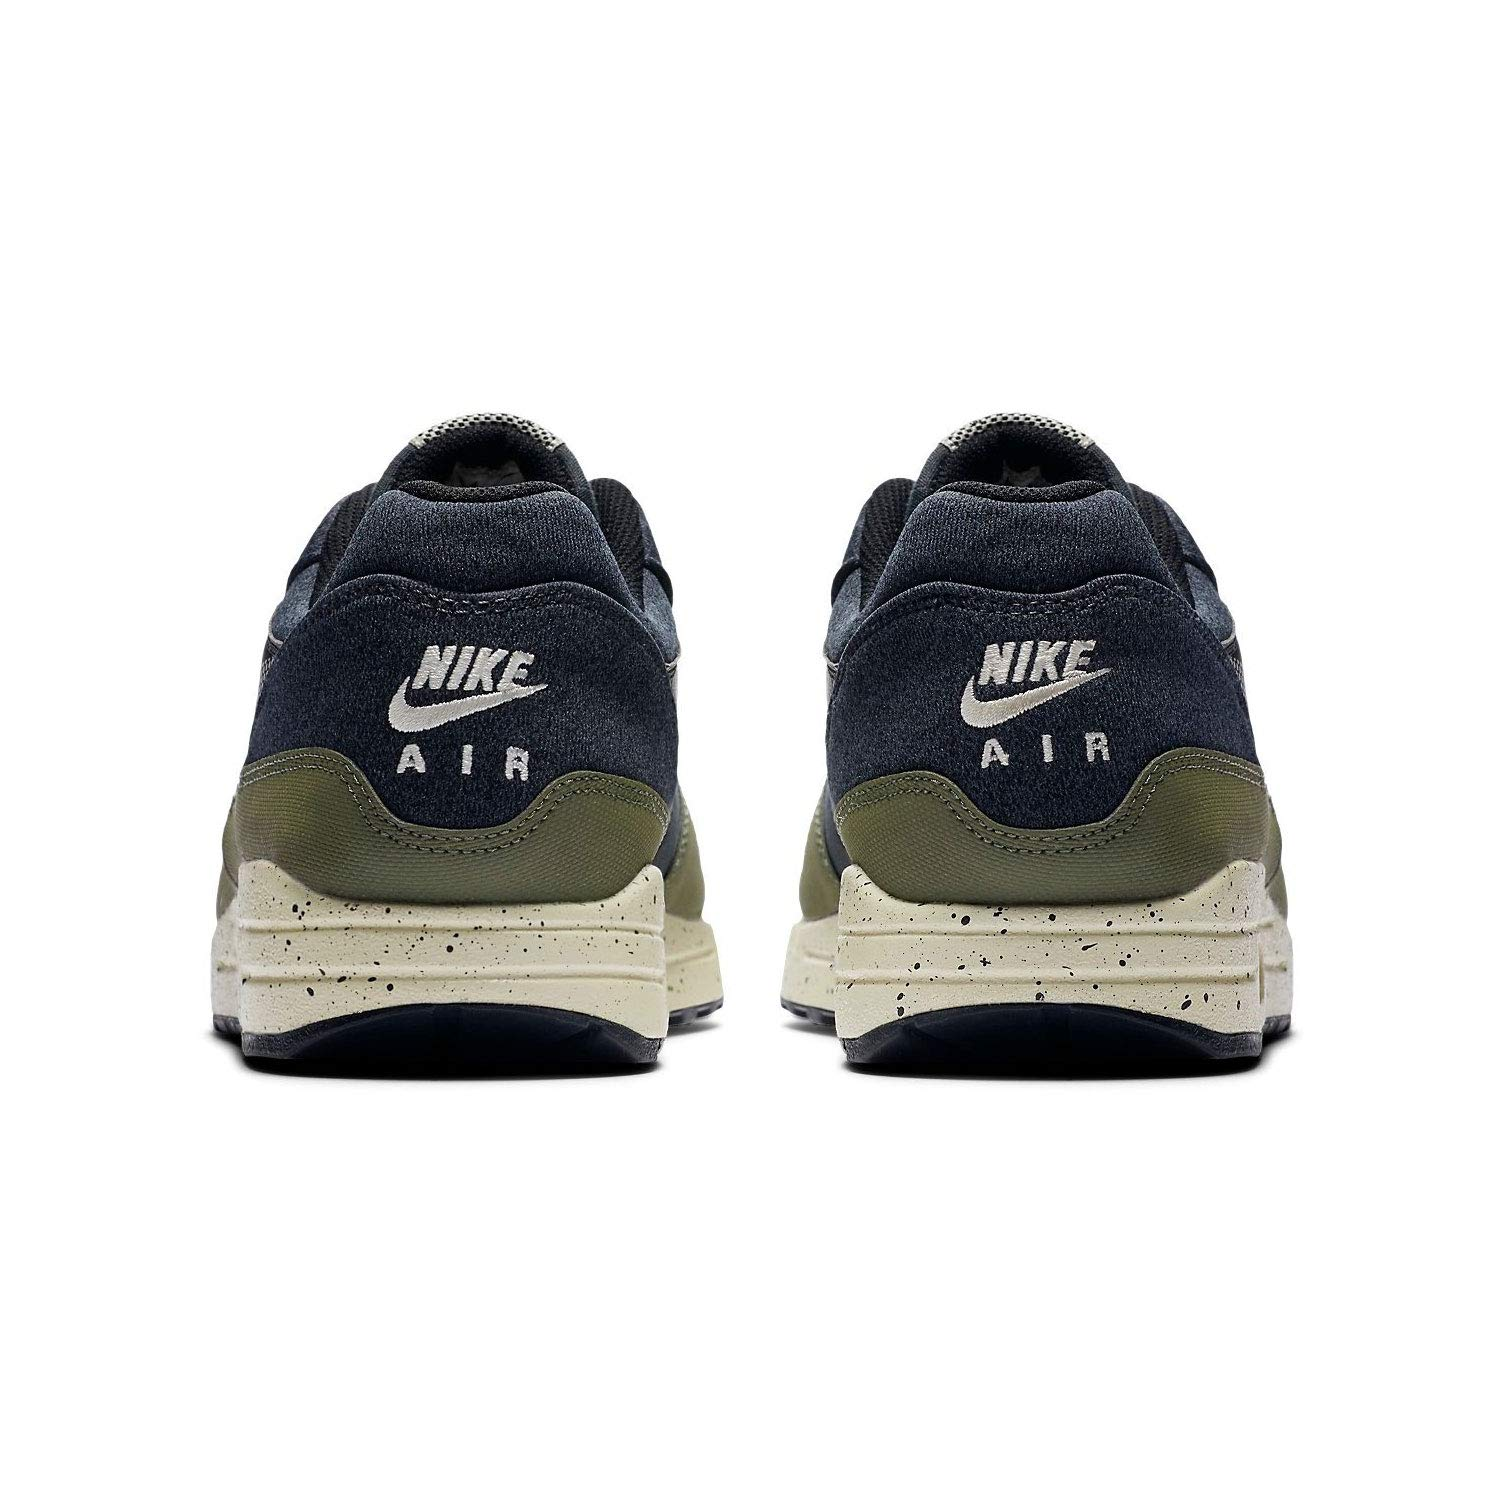 new styles 17ff9 5182a Amazon.com   Nike Mens Air Max 1 SE Running Shoes Medium Olive Light  Cream Black AO1021-200 Size 9.5   Shoes